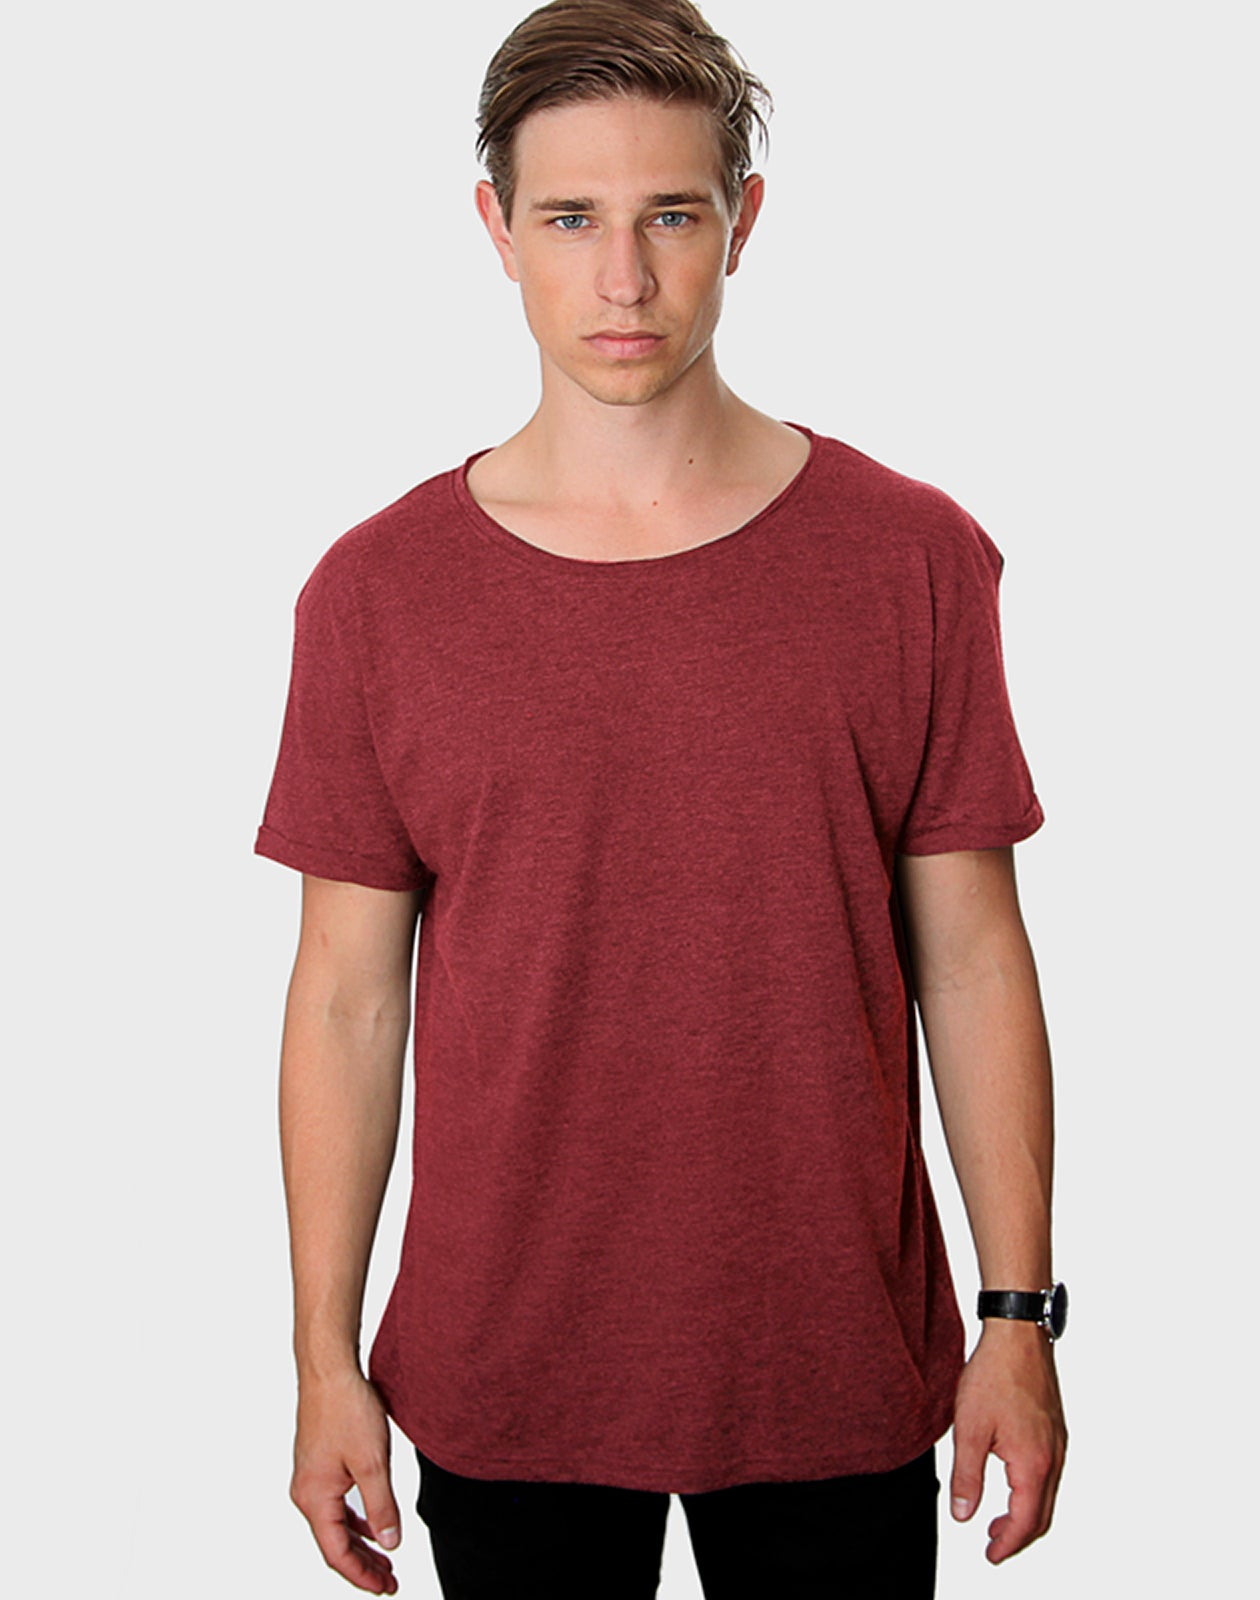 Tailored Fit - Torn Crew Neck, Heather Bordeaux